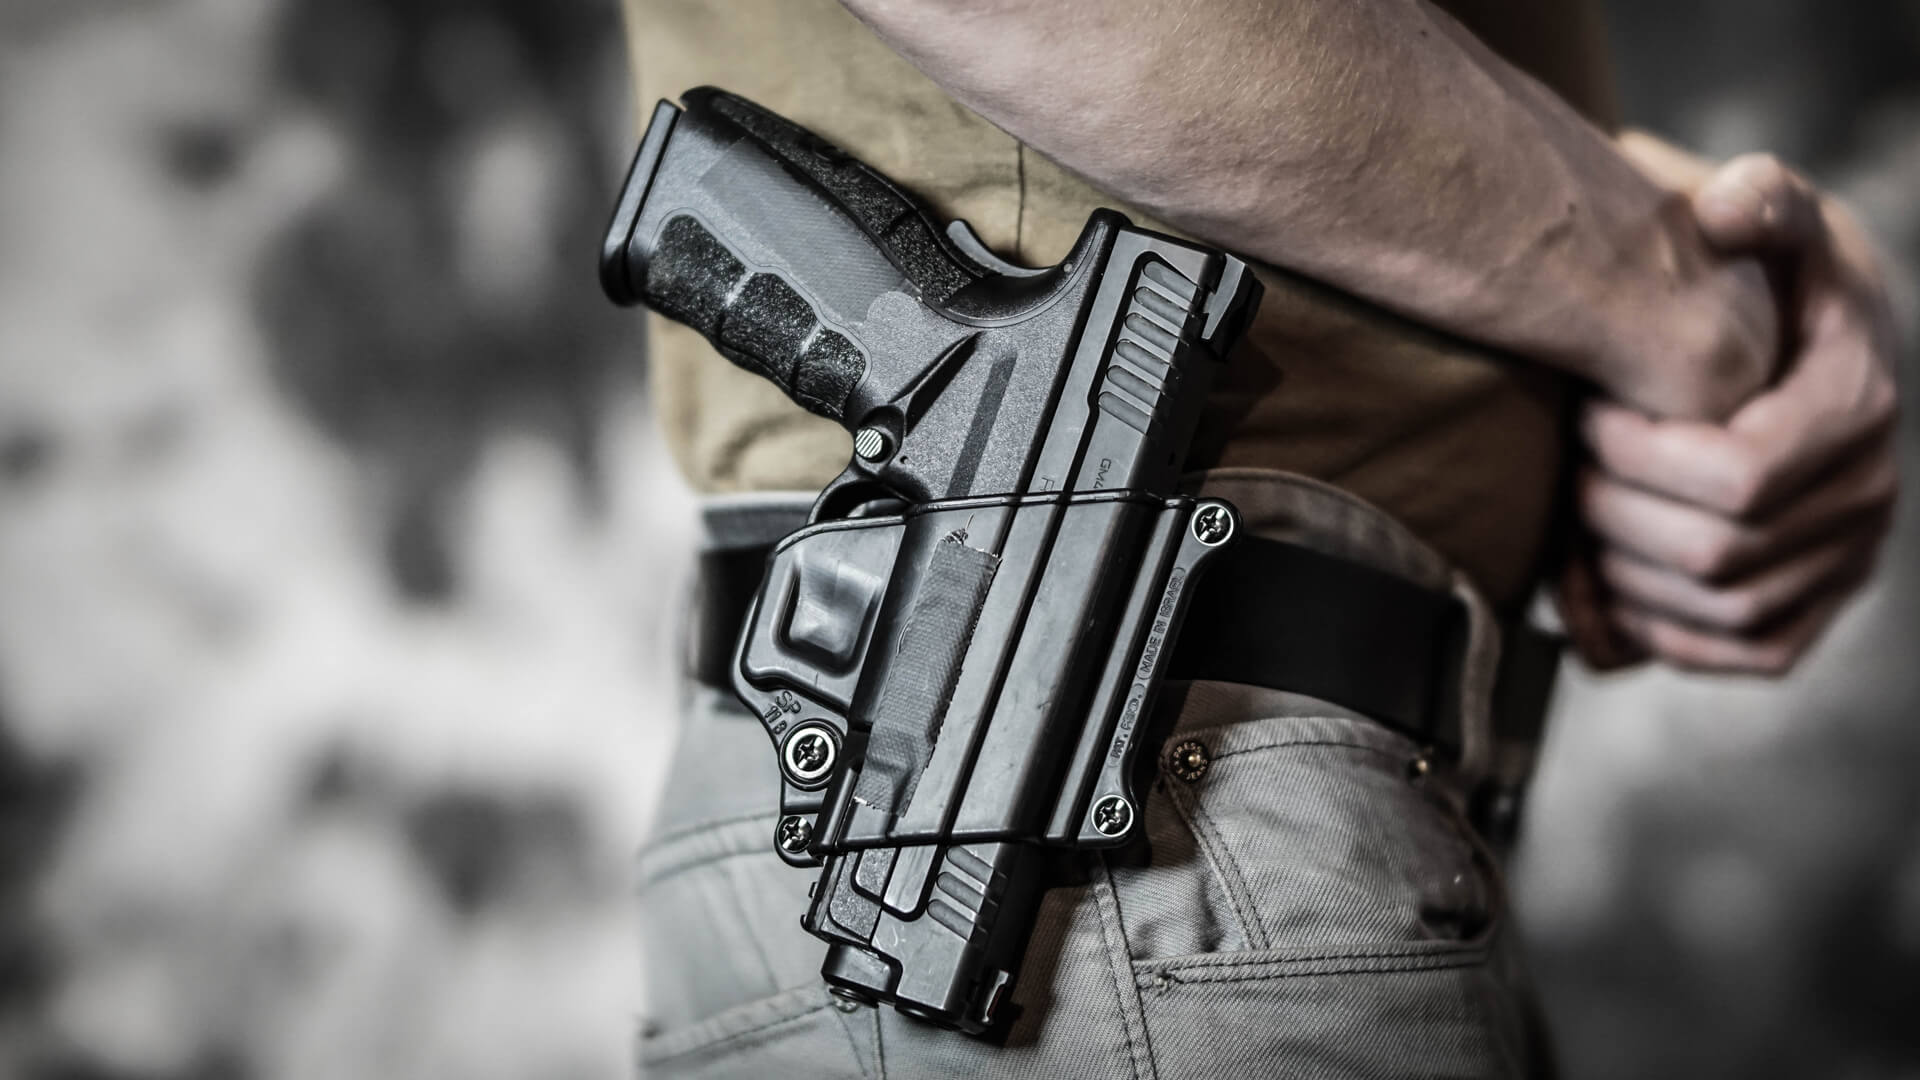 Texas Open Carry Law Changes So Man Has Gun On Waist